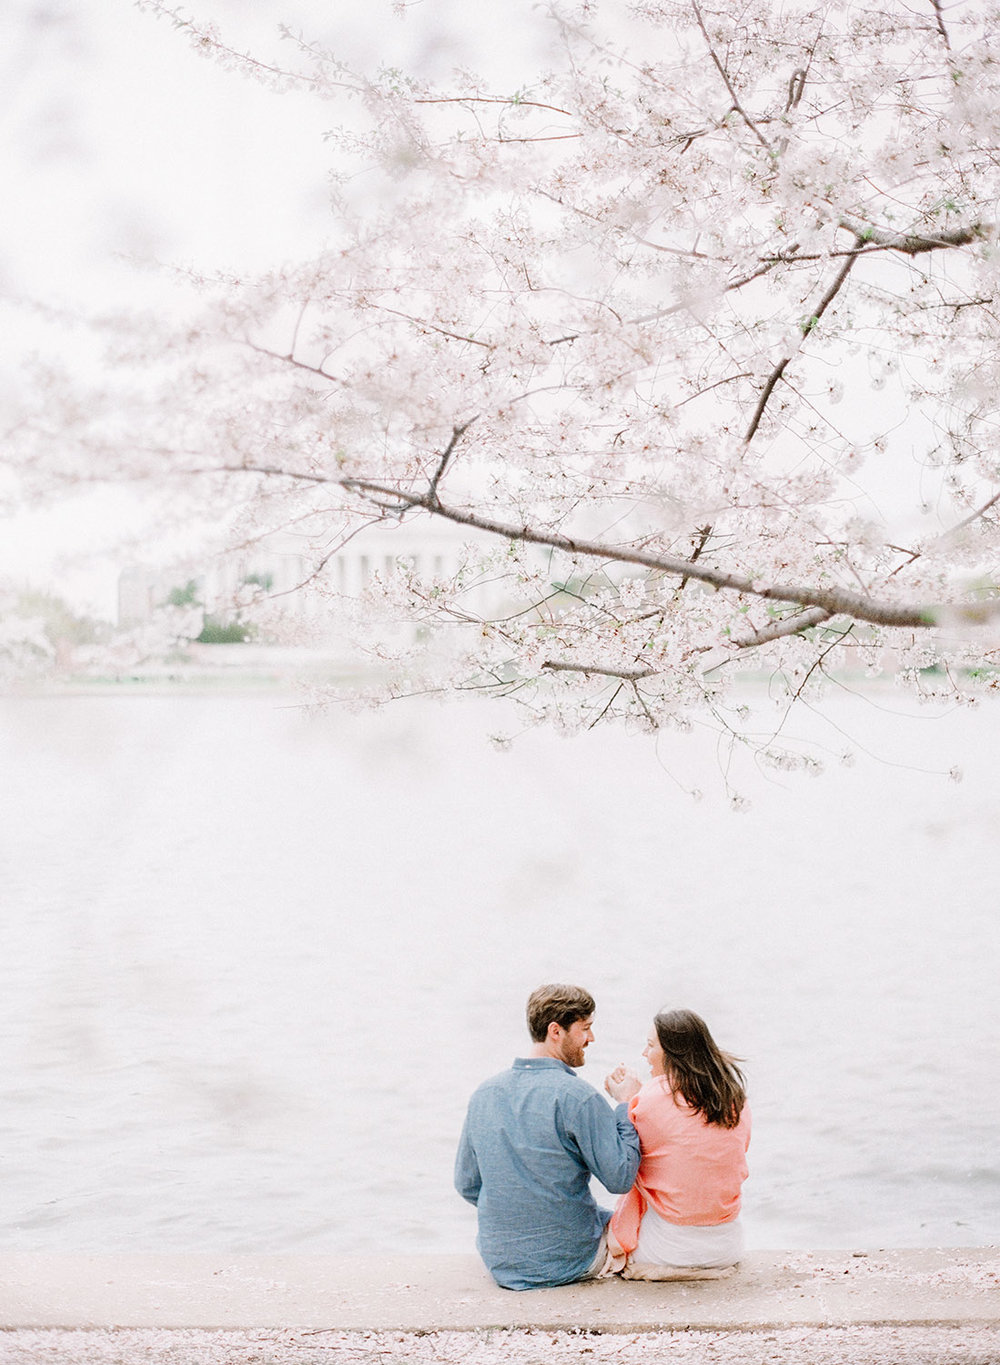 washington-dc-cherry-blossom-engagement-shoot-3.JPG